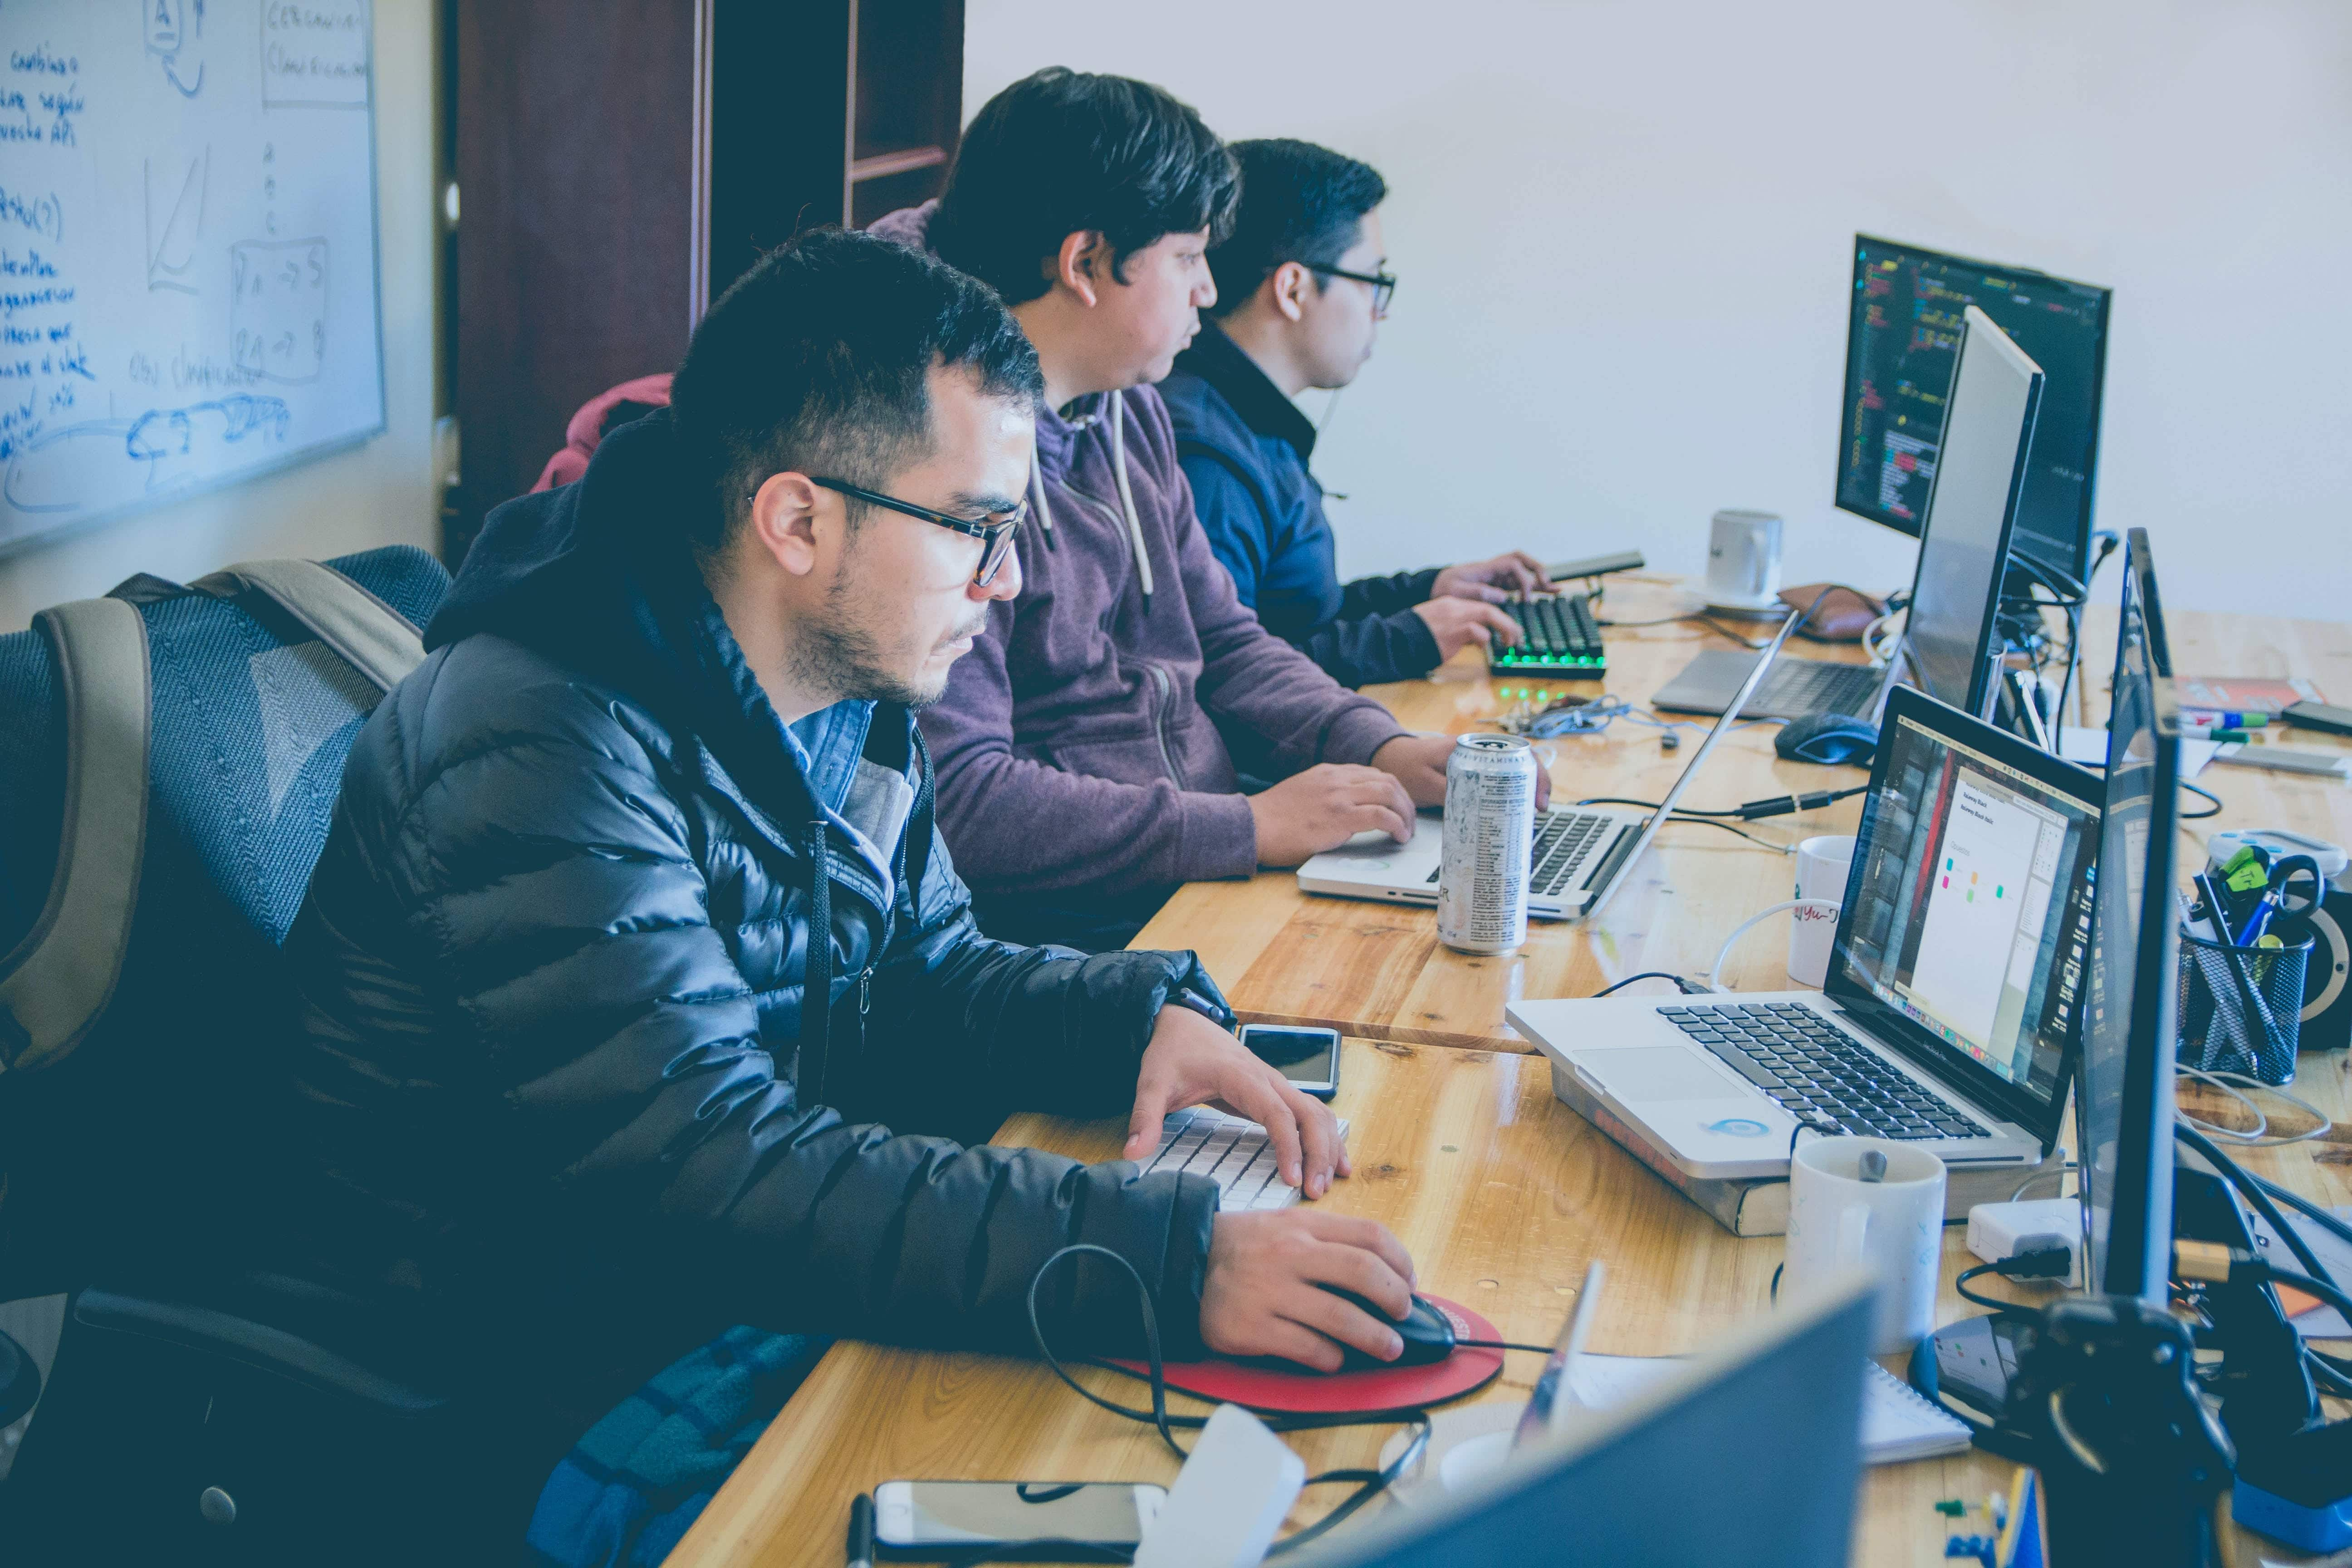 A team of in-house developers provides support for businesses that use SaaS technology.